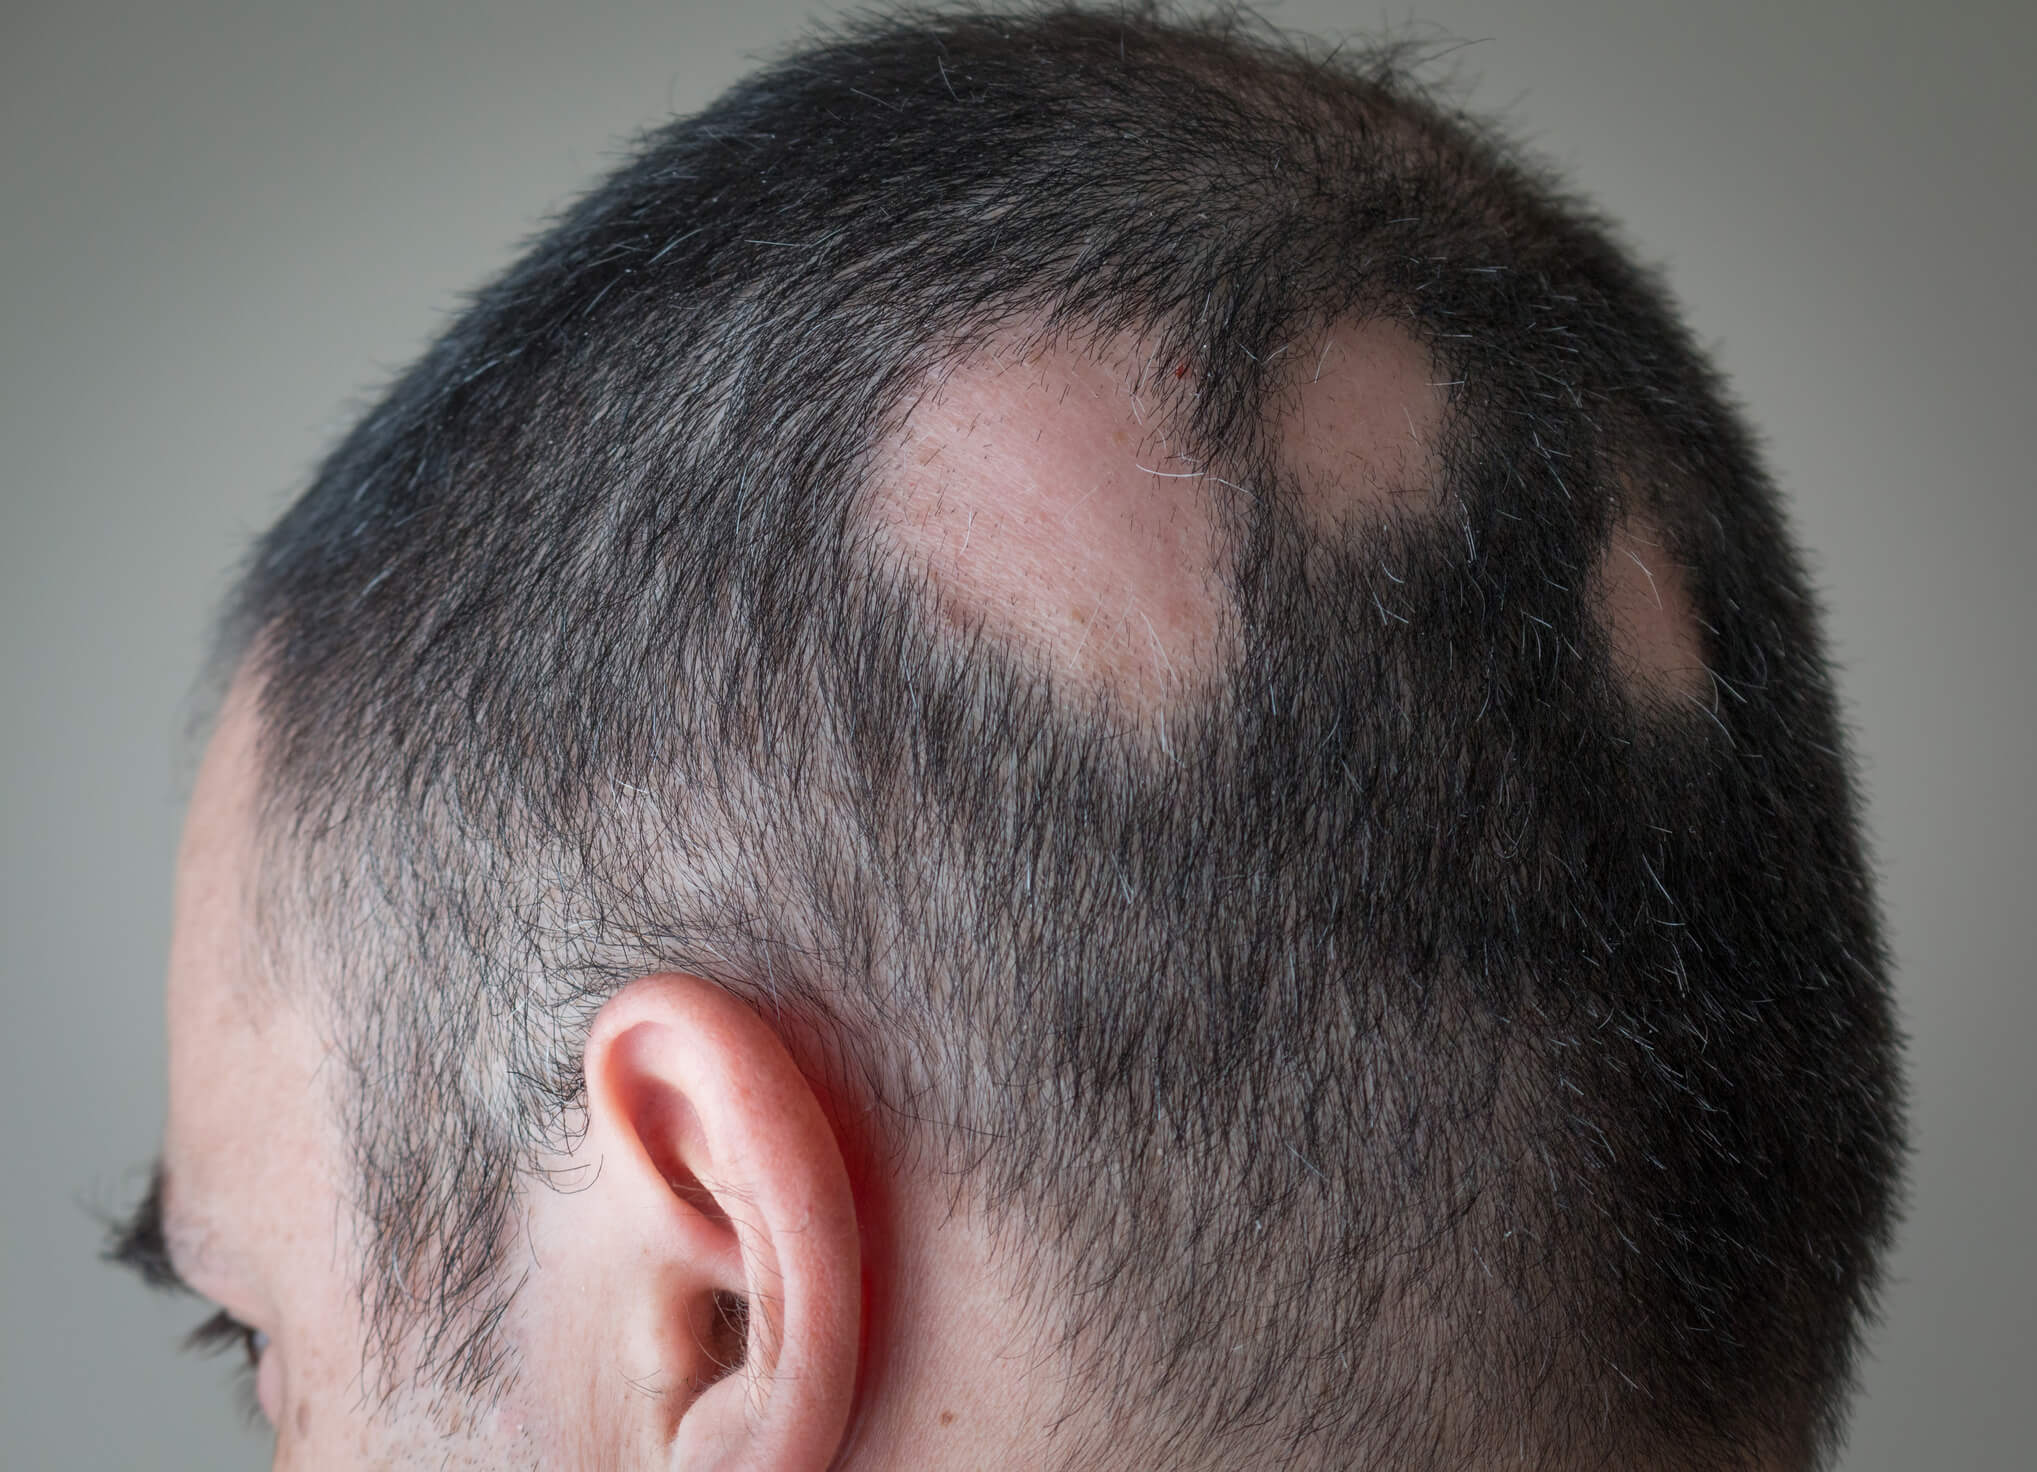 A head of hair with missing hair patches